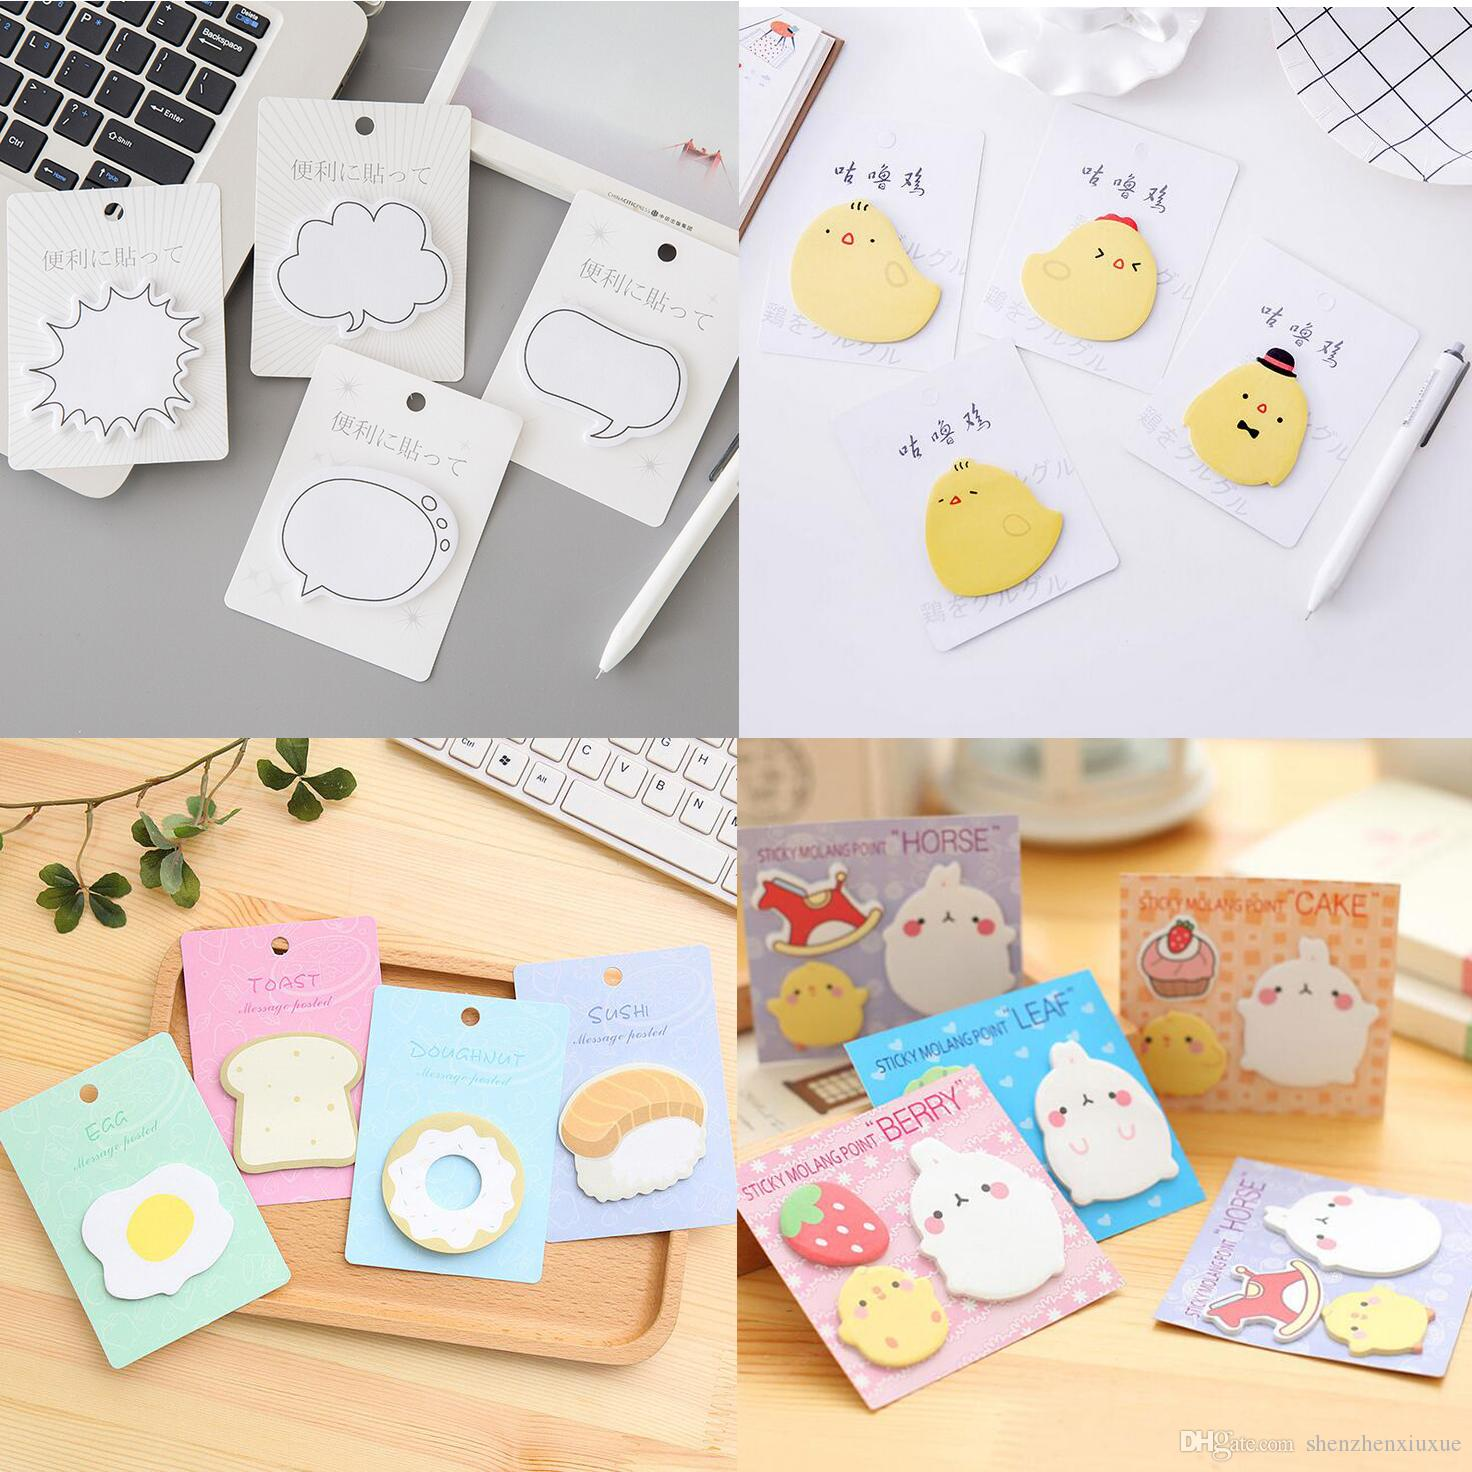 2019 Cute Sticky Notes Memo Pads Creative Cartoons Self Adhesive Paper Notepads Labels Bookmark School Supplies Stationery From